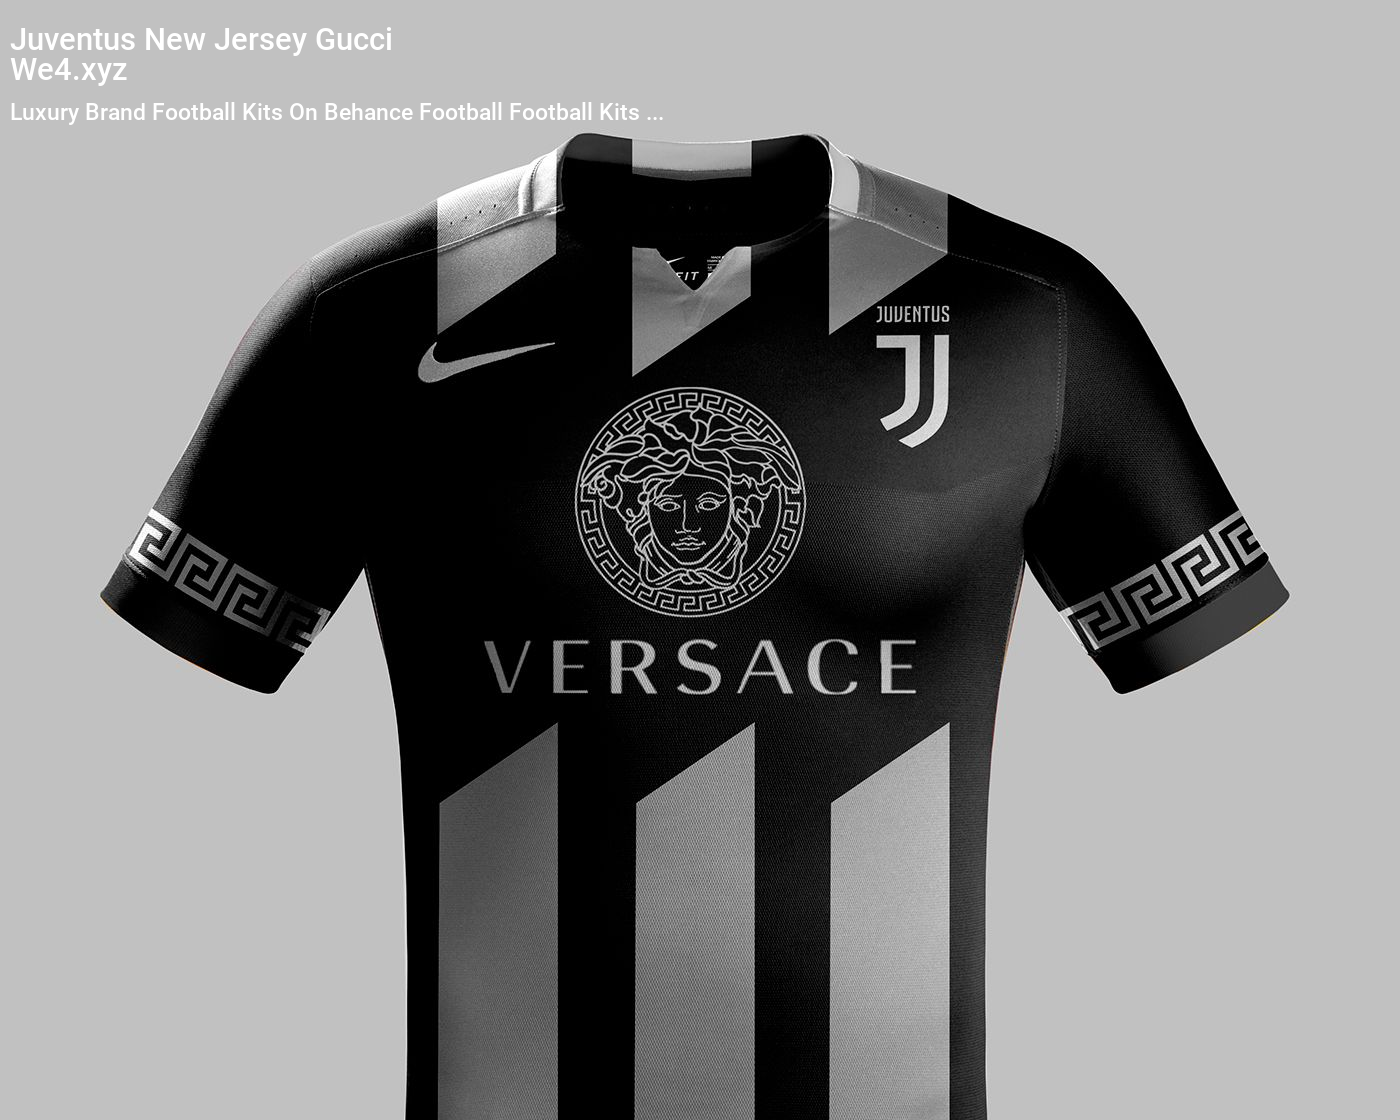 Juventus New Jersey Gucci Football Kits Football Shirt Designs Juventus